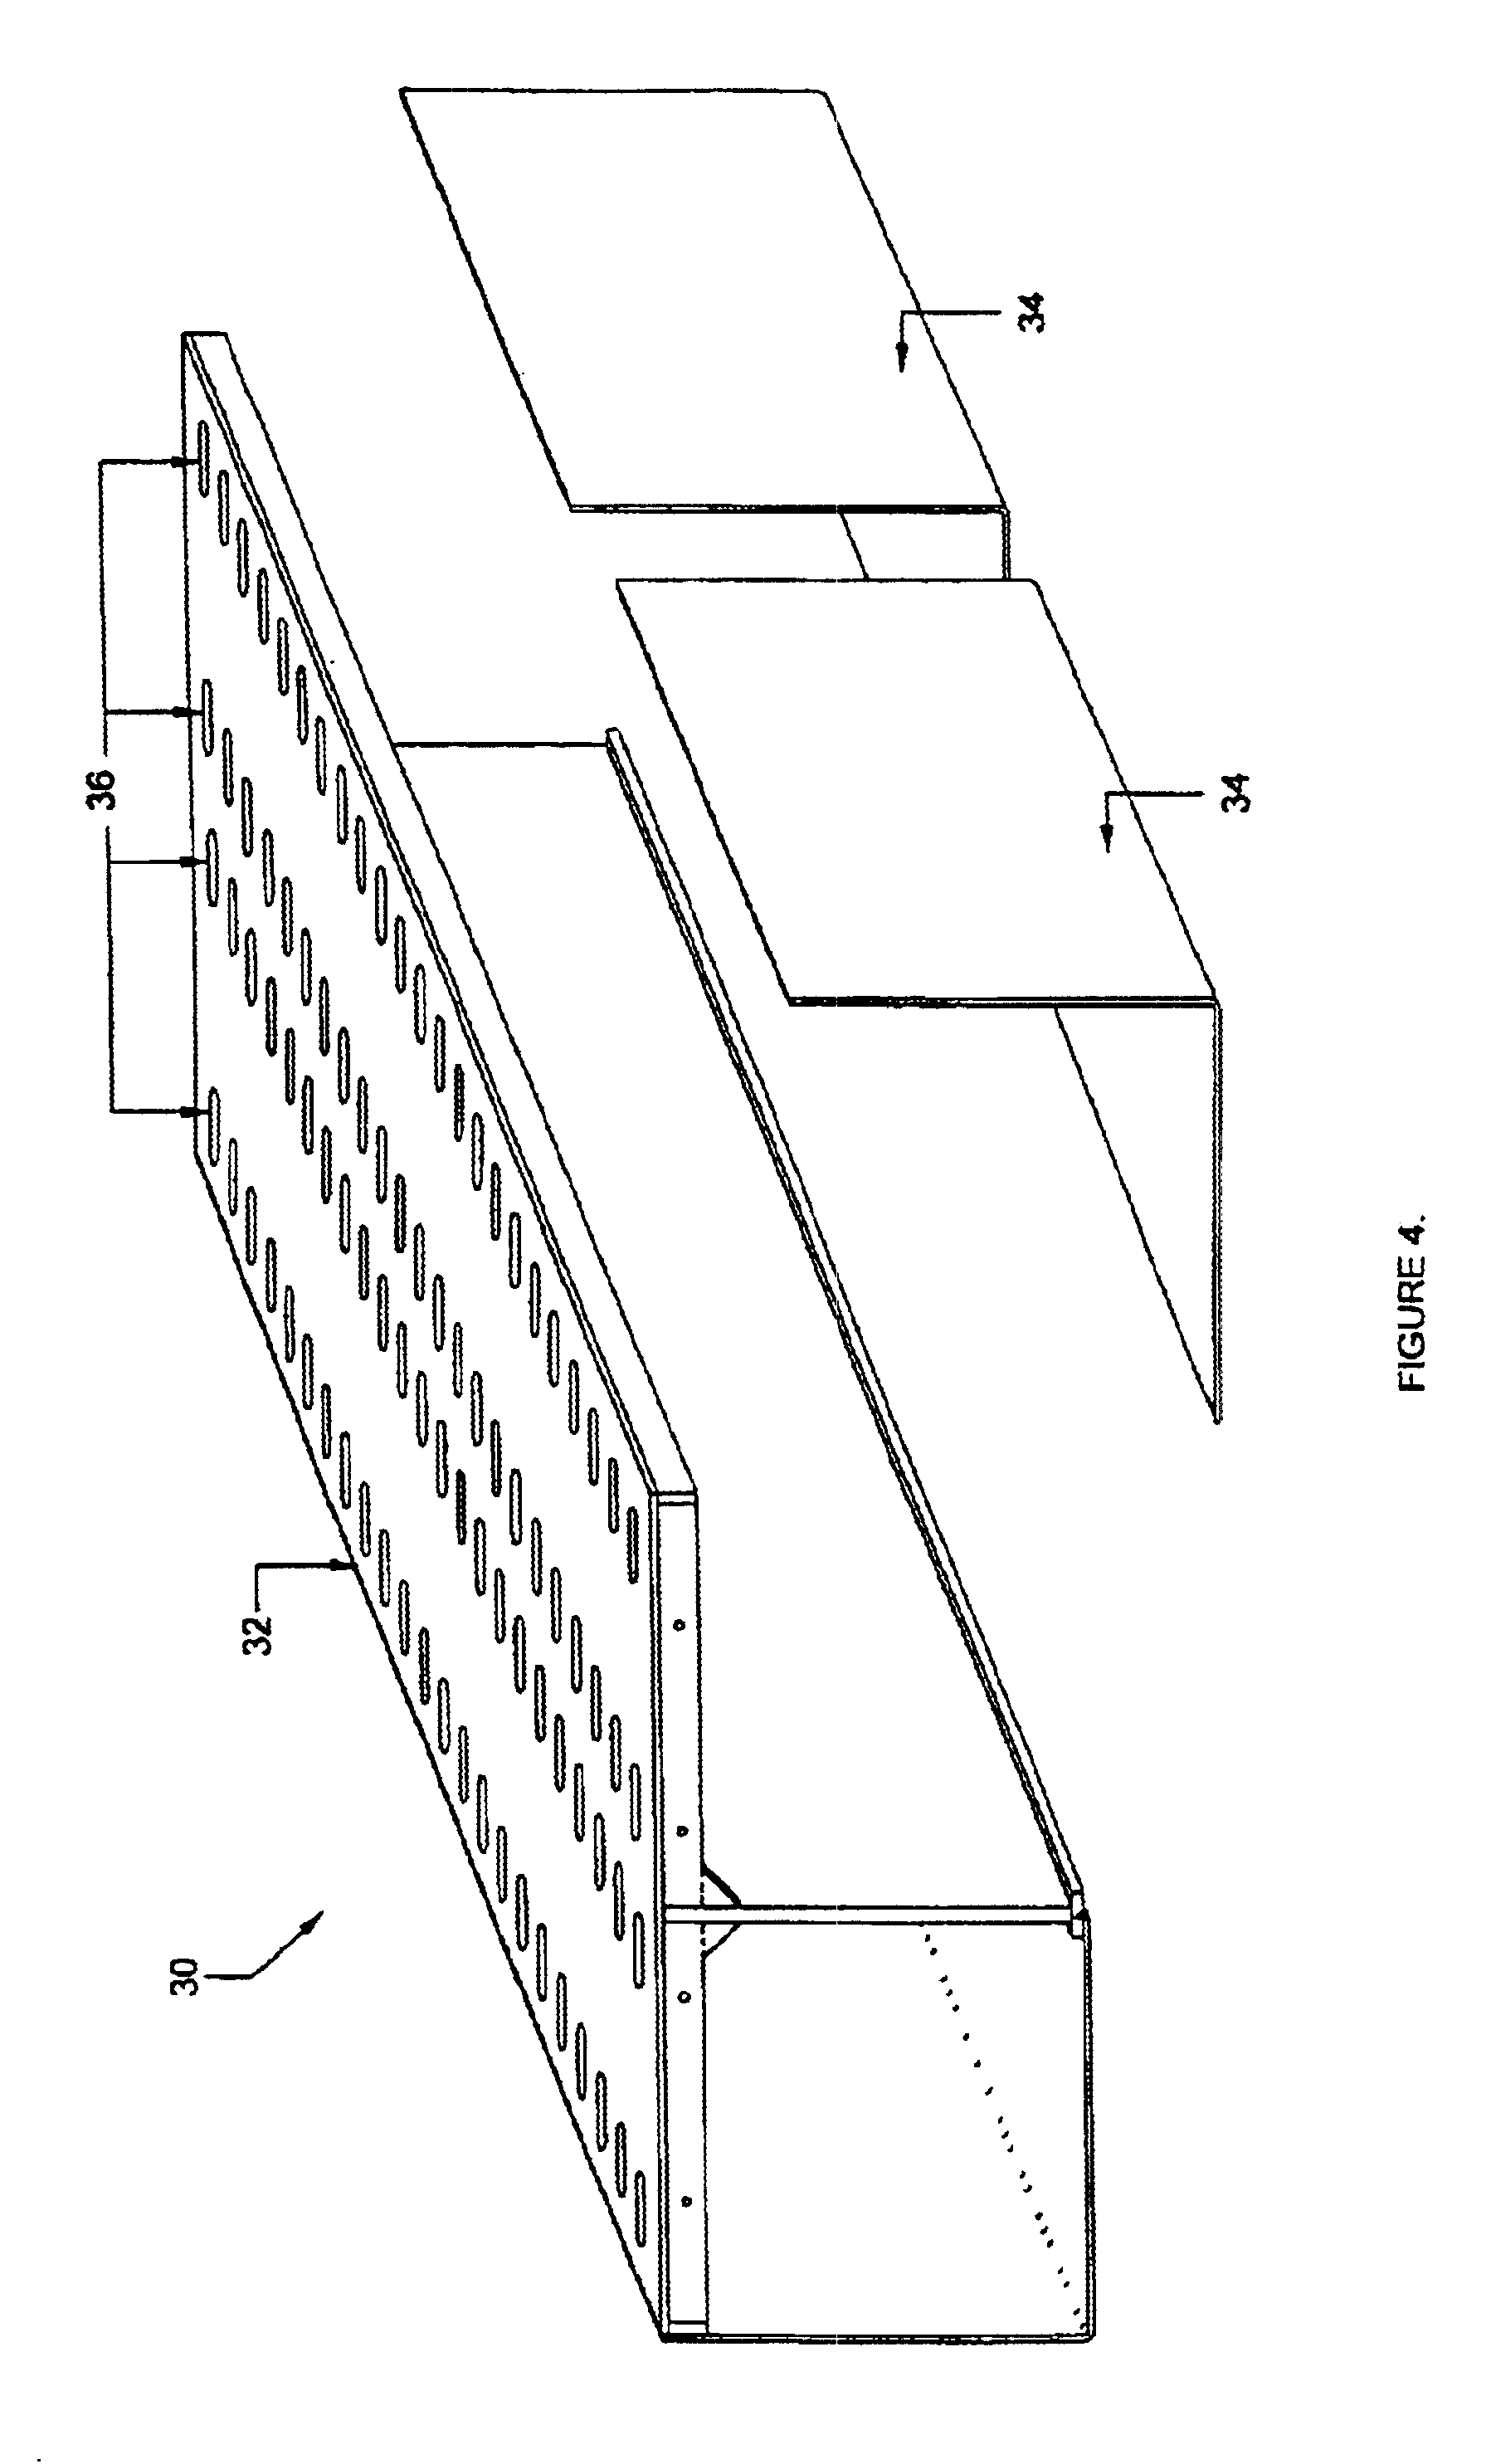 patent us6689956 - electrical bus duct system with heat-dissipating enclosure